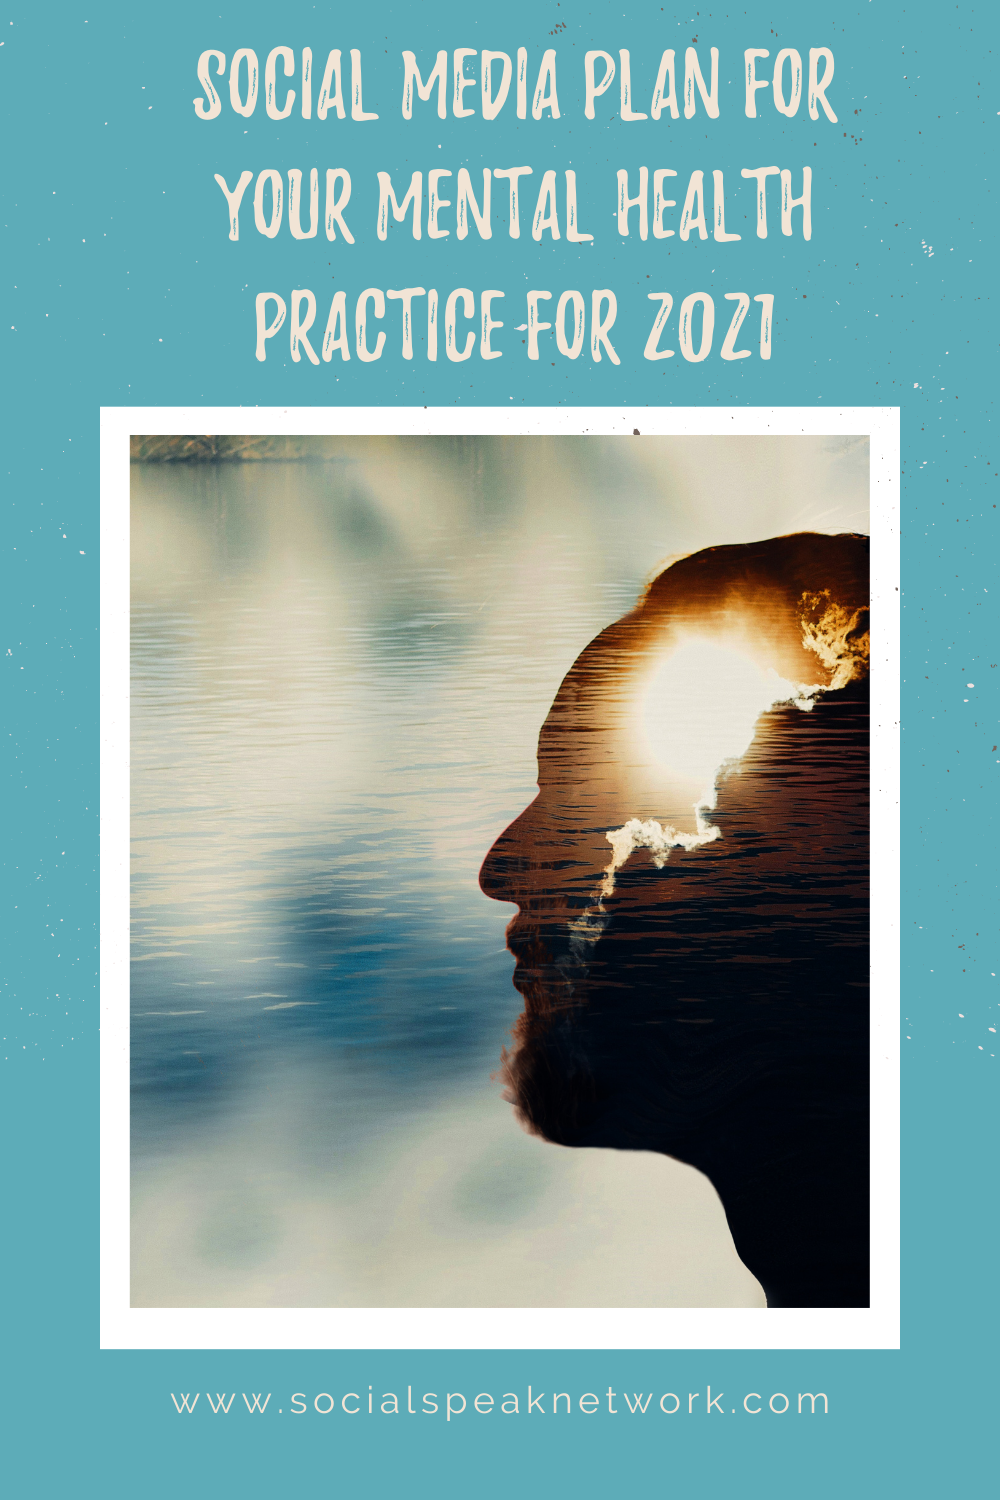 Social Media Plan for Your Mental Health Practice for 2021